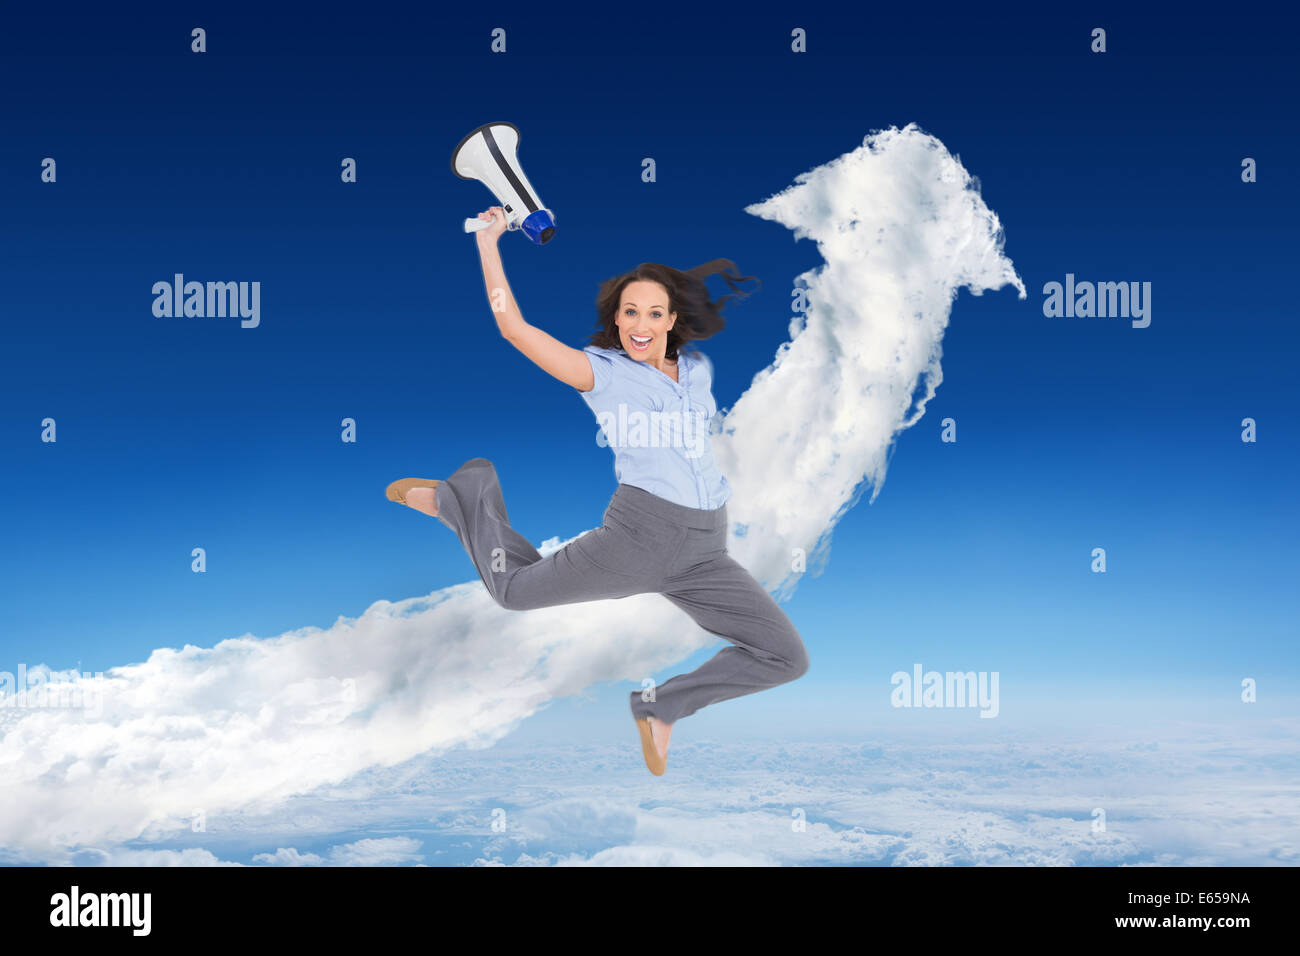 Composite image of cheerful classy businesswoman jumping while holding megaphone - Stock Image